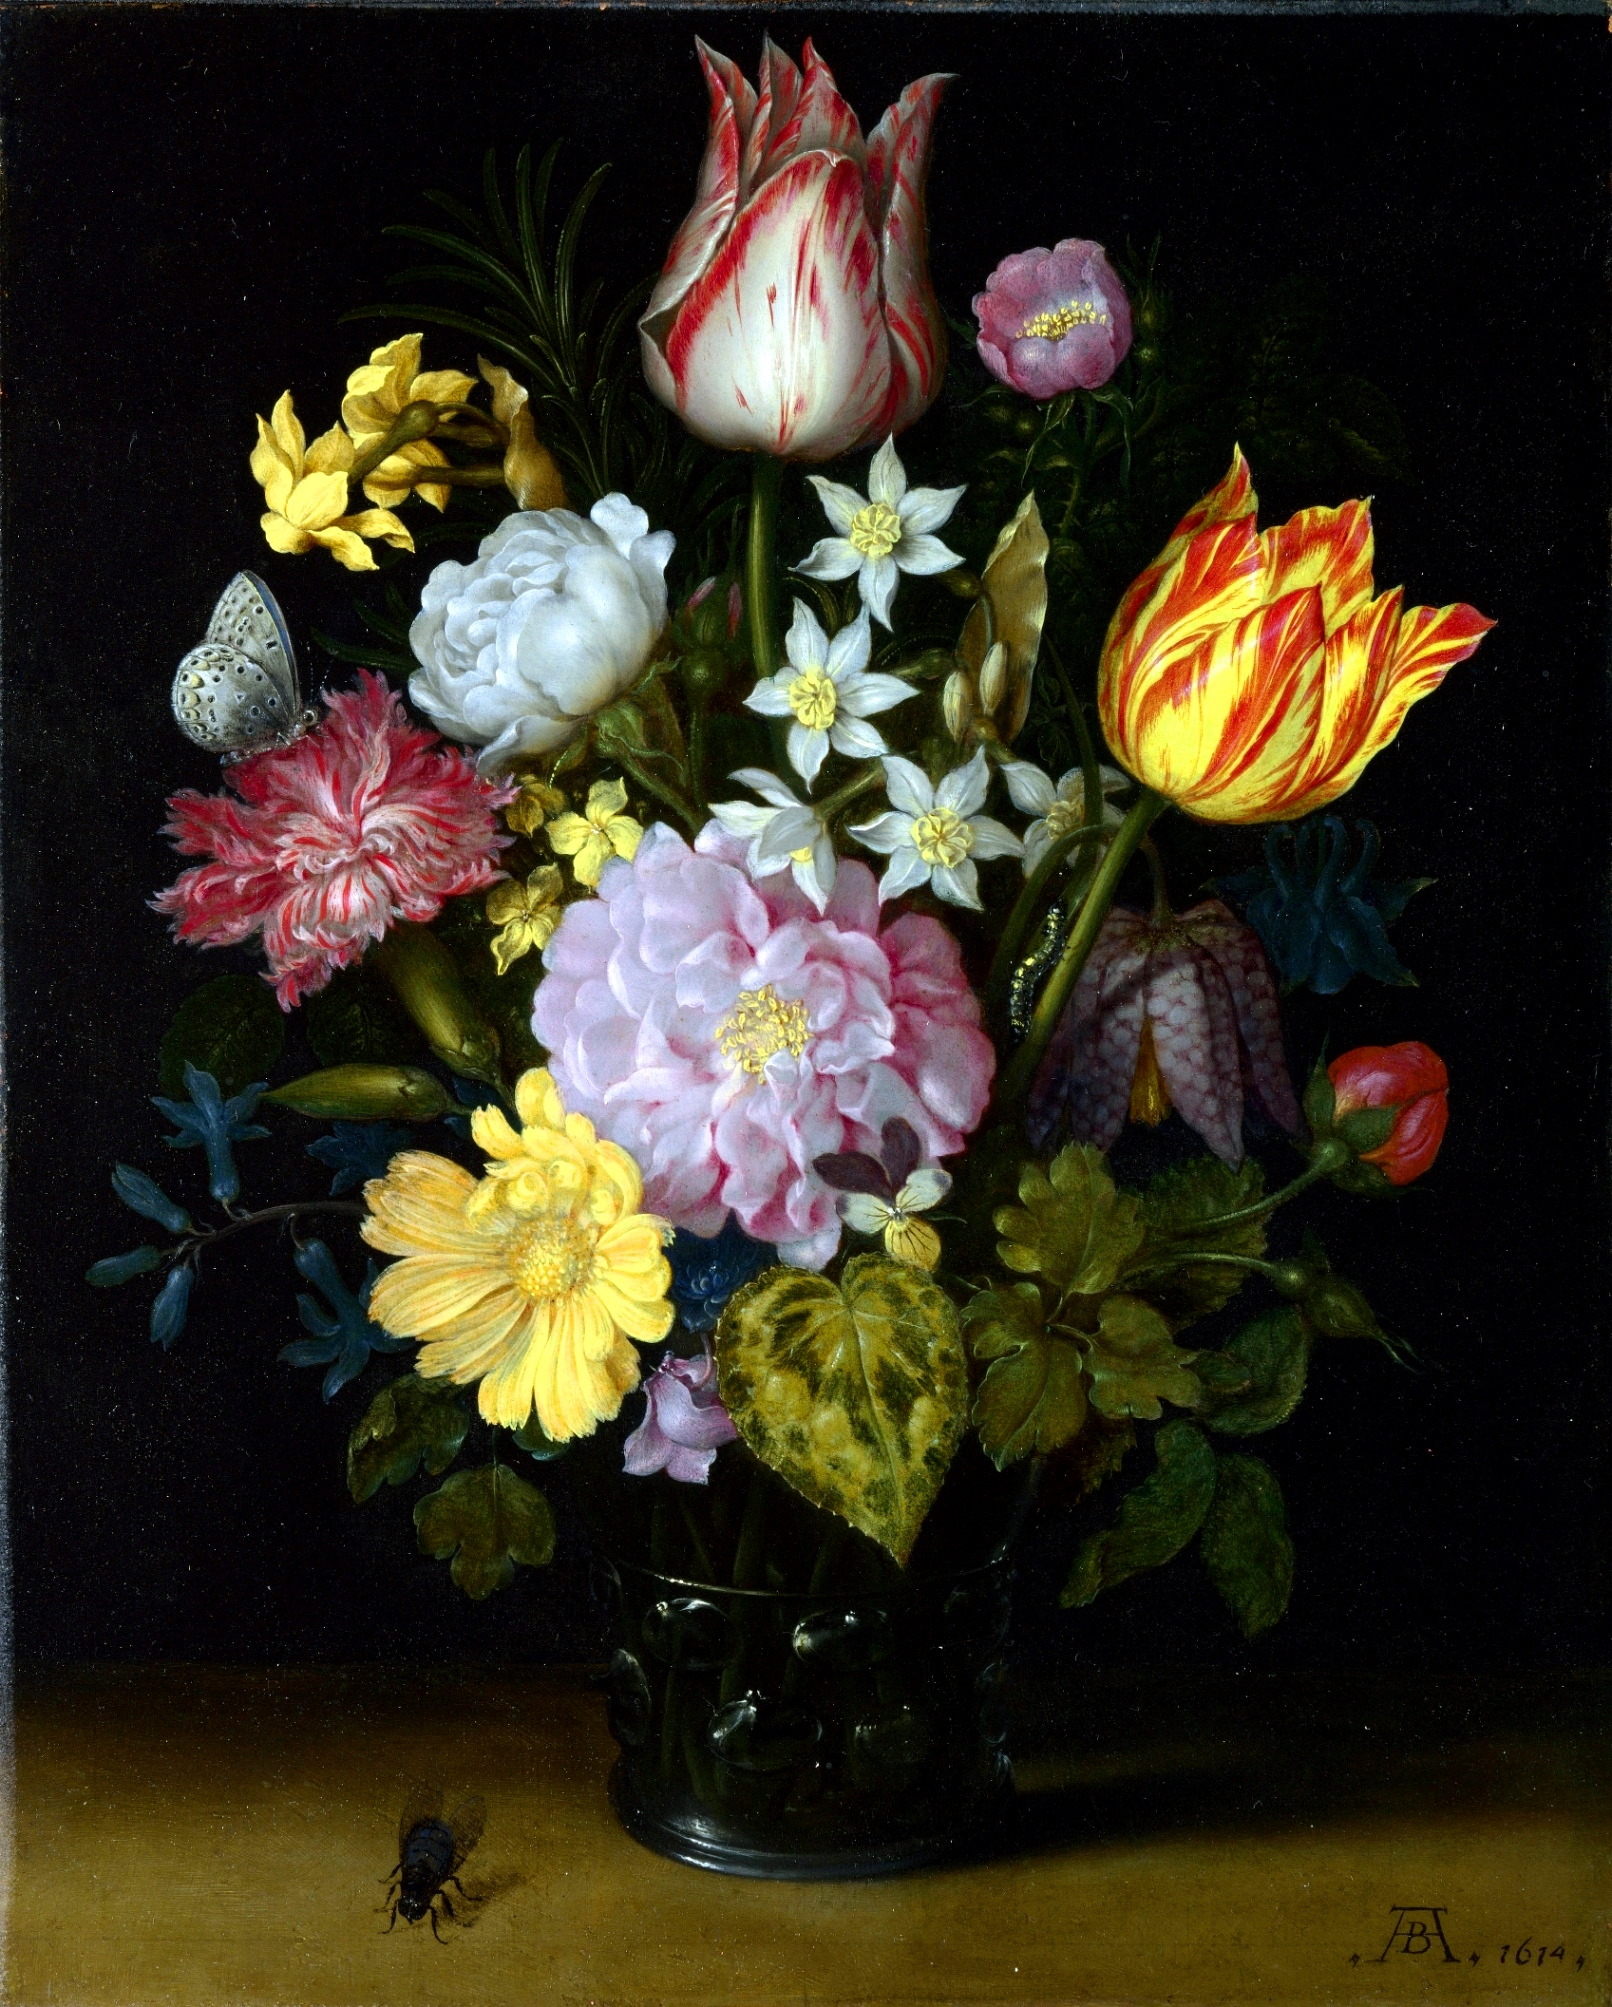 玻璃花瓶里的花_Flowers in a Glass Vase-安布罗修斯·博沙特